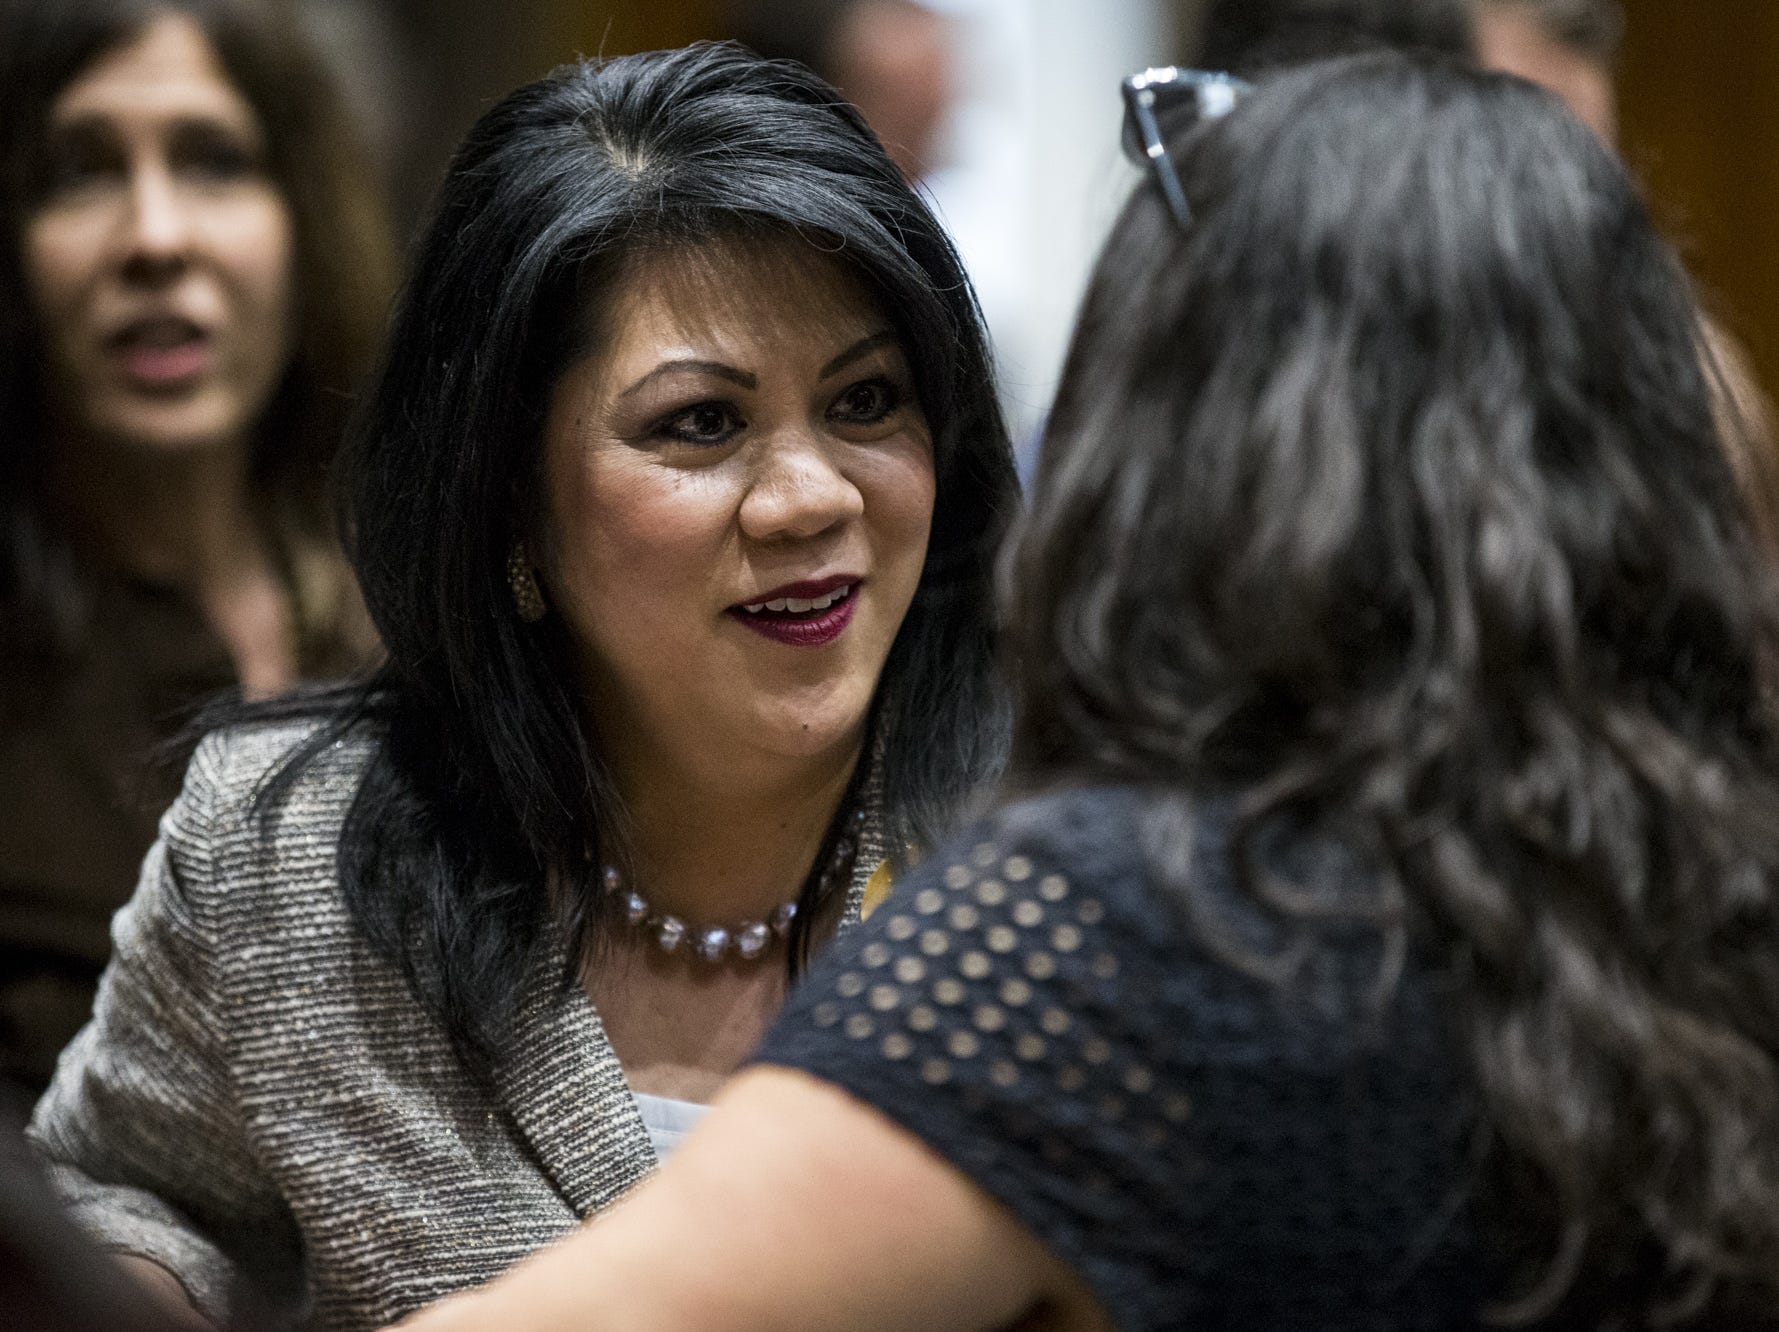 State Treasurer Kimberly Yee talks with people on the floor before the State of the State on Jan. 14, 2019, at the Arizona House of Representatives Chambers in Phoenix.